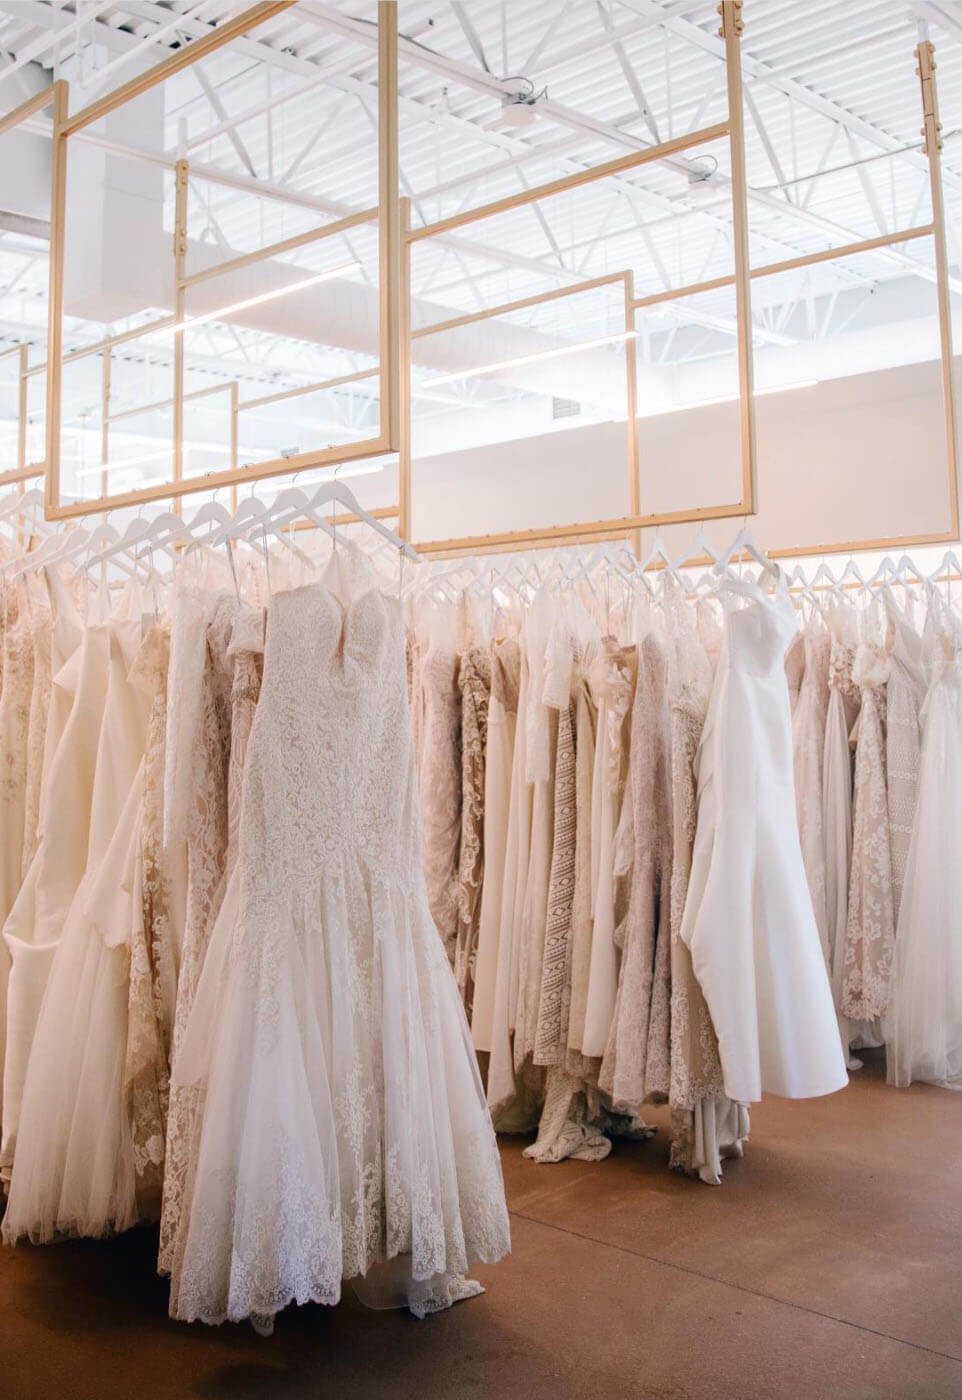 Photo of Bliss Bridal Showroom interior